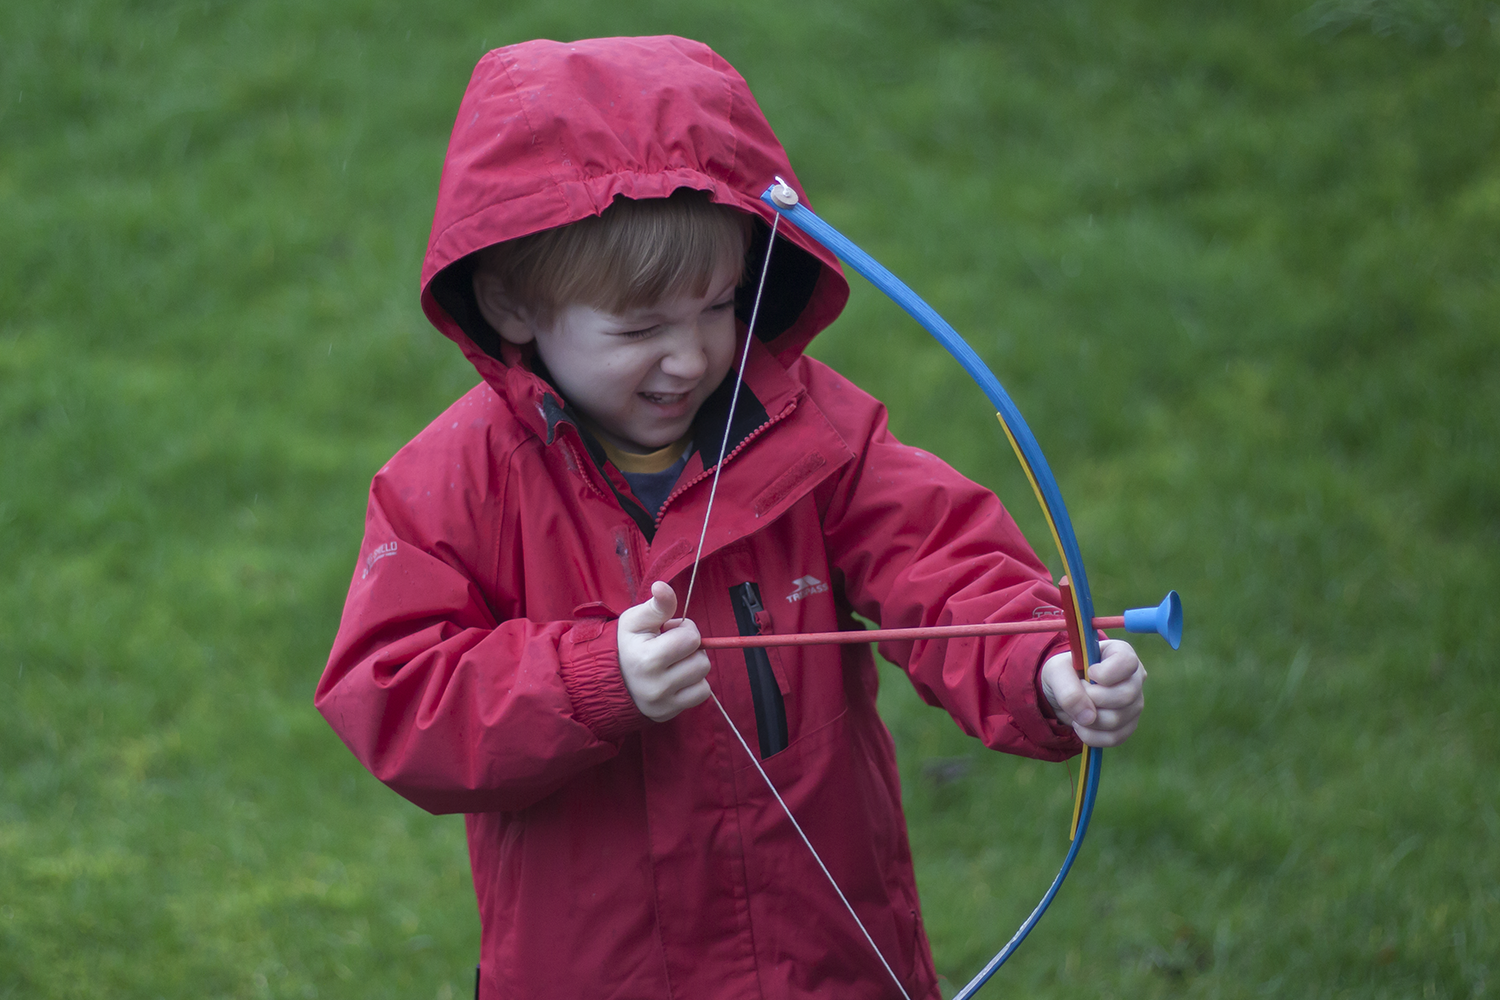 A boy in a red coat with a wooden bow and arrow